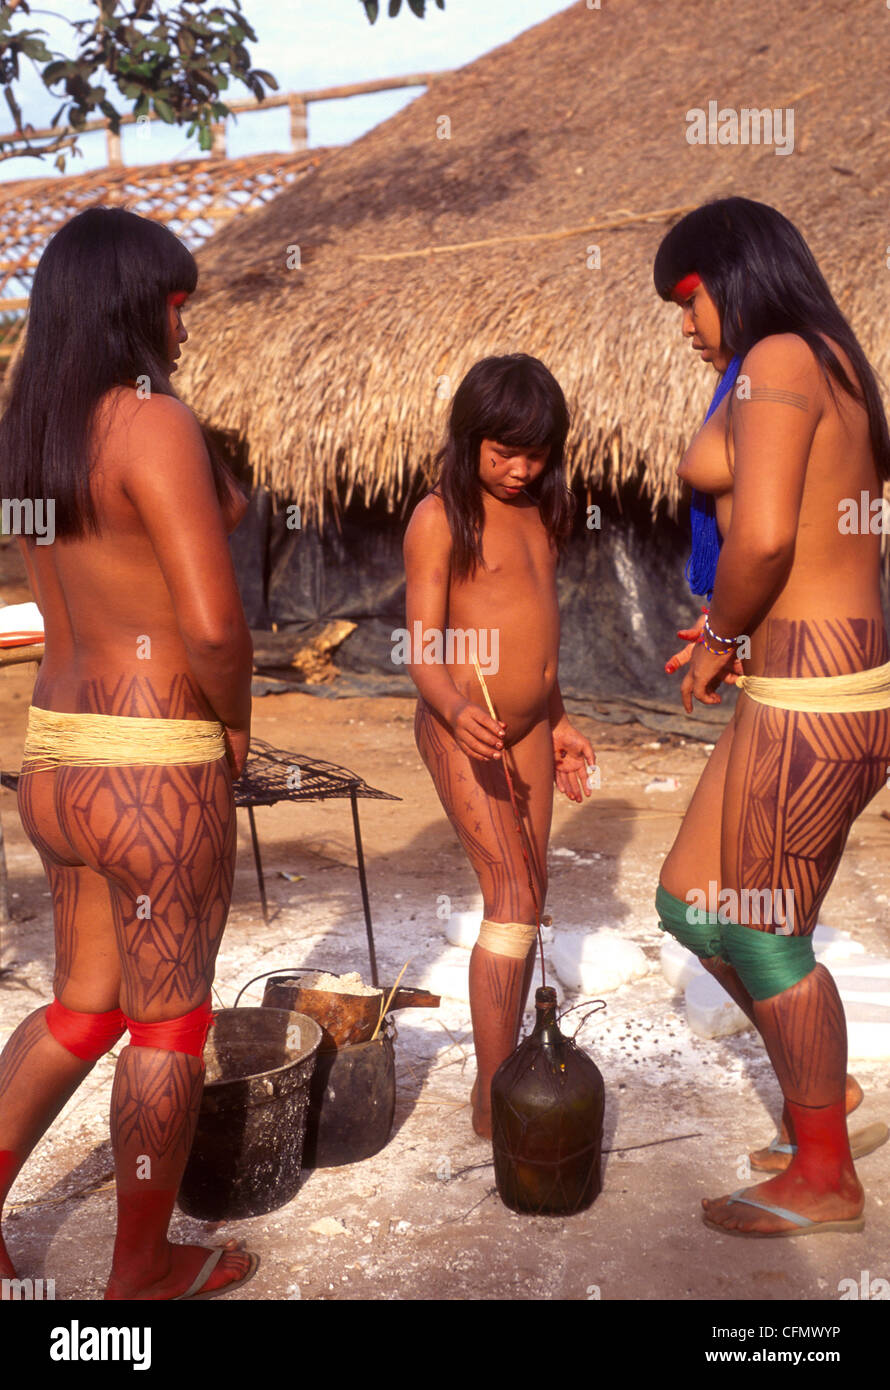 Apologise, but, Amazon tribe with shaved pussy congratulate, brilliant